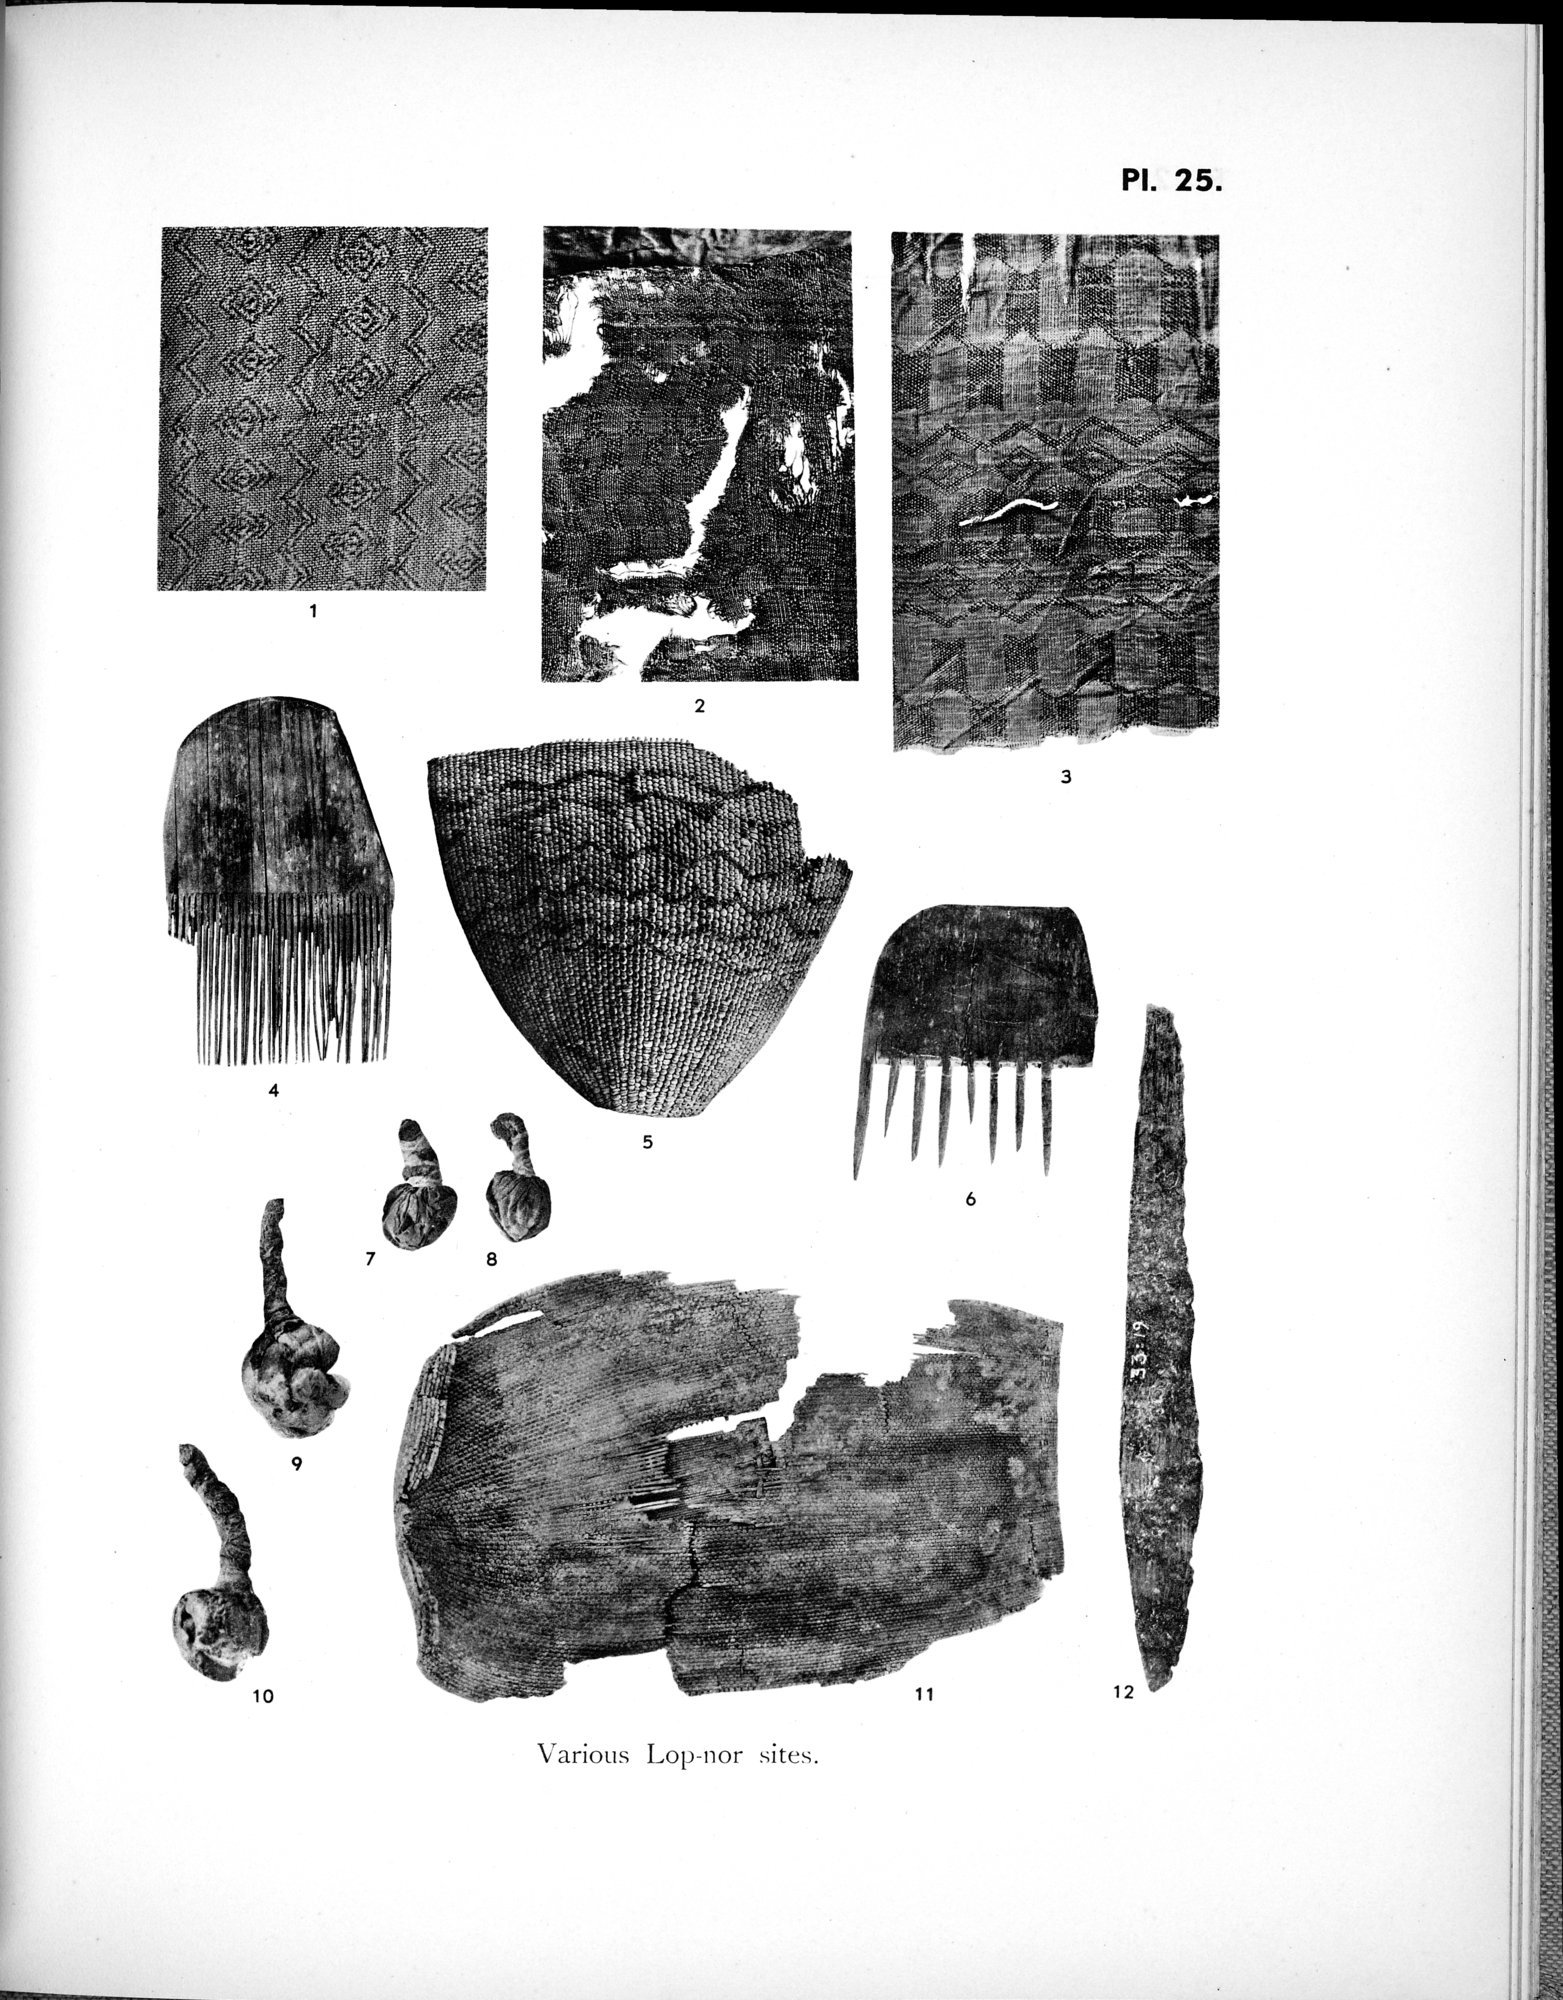 Archaeological Researches in Sinkiang : vol.1 / Page 313 (Grayscale High Resolution Image)